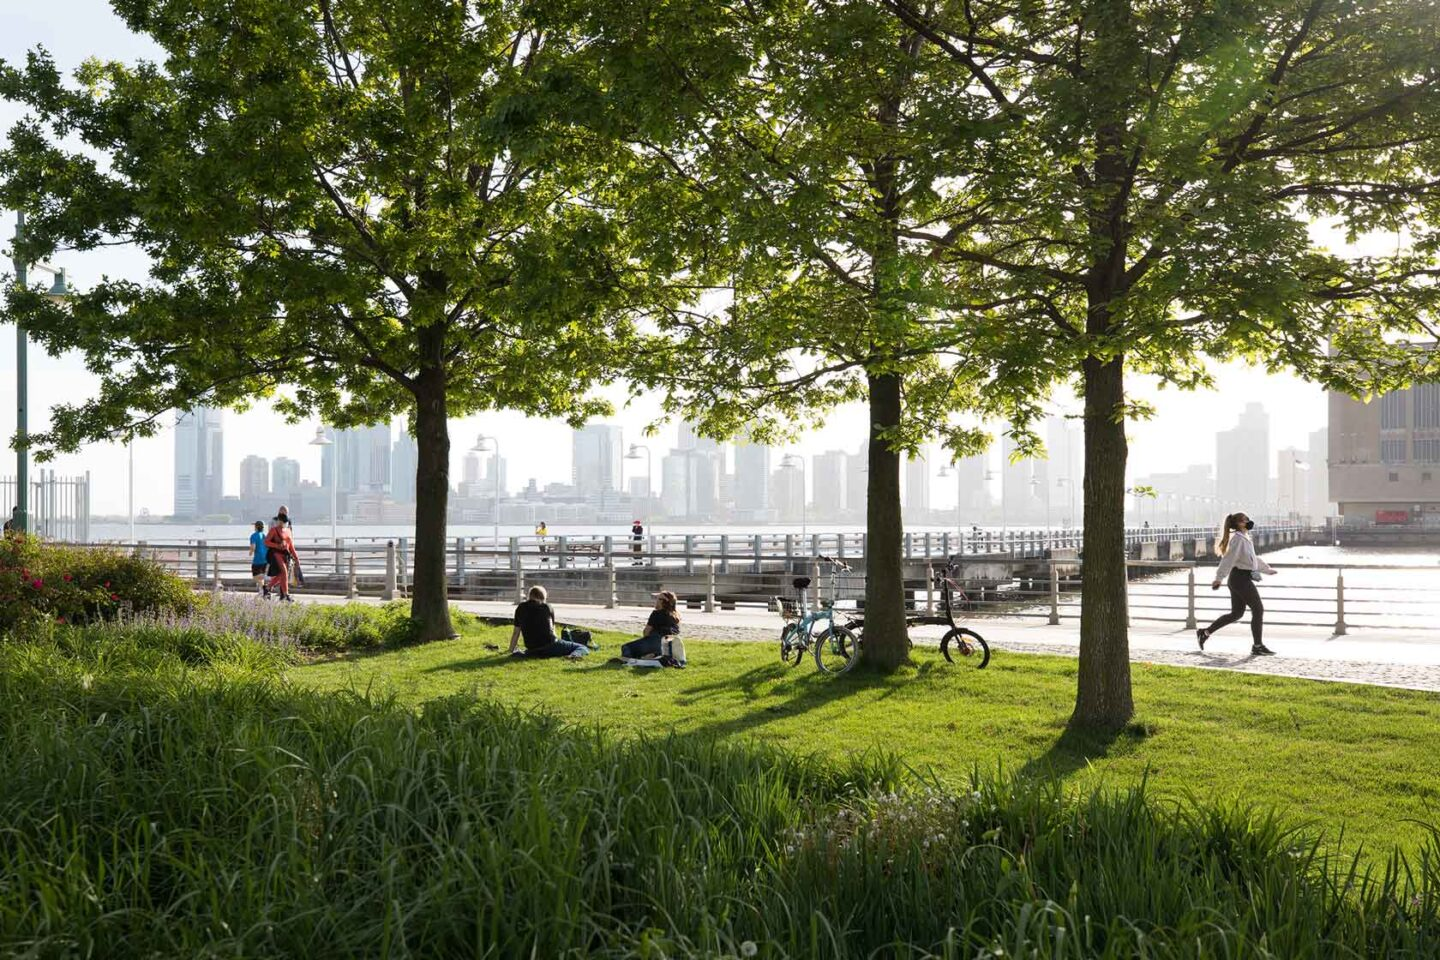 Trees shade Park visitors in Tribeca